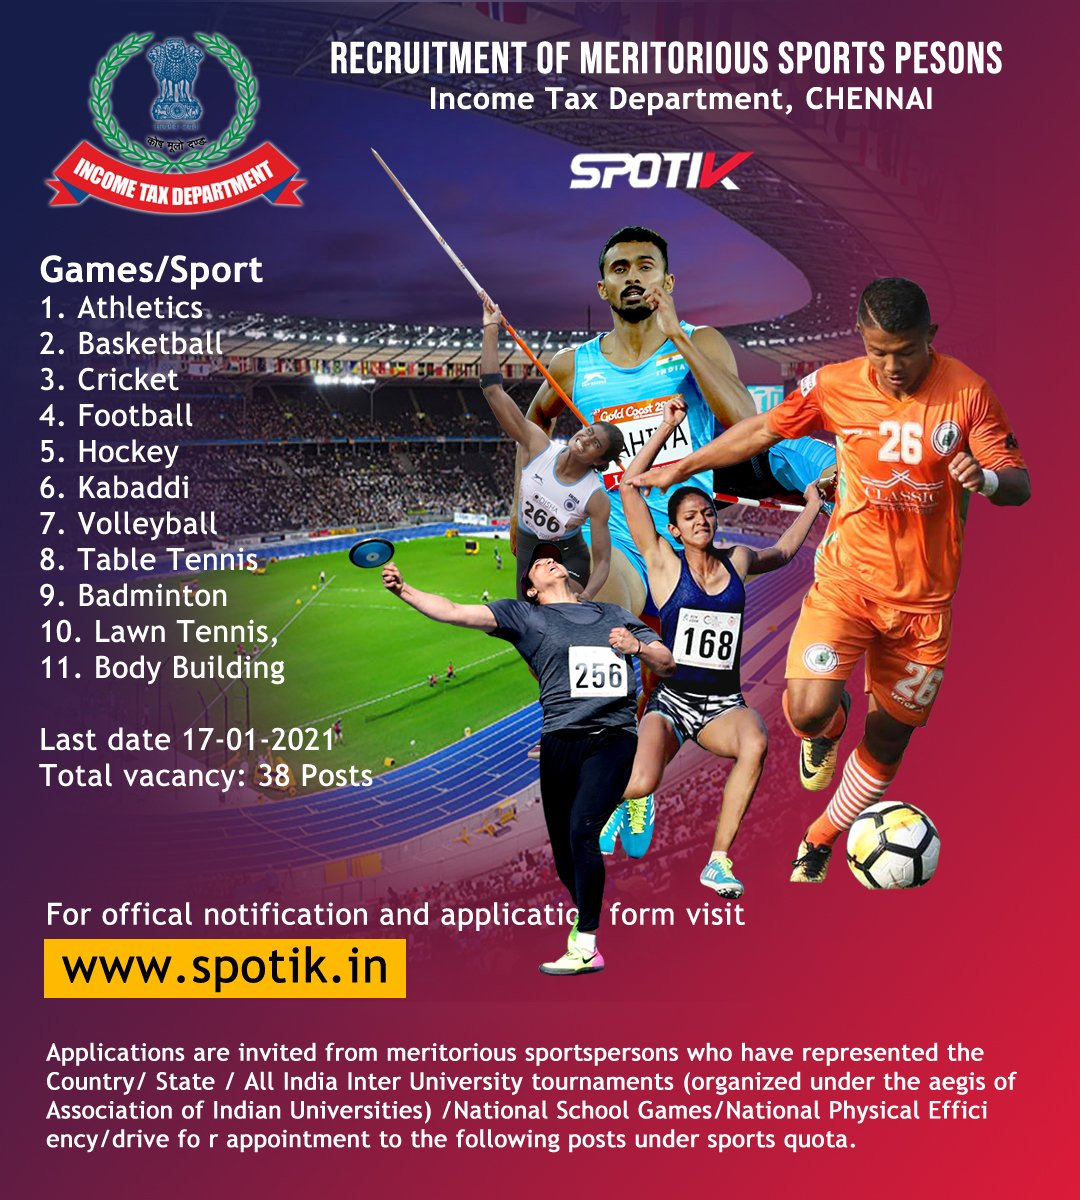 Sports Quota Recruitment - Income Tax Department India   . #sportsquota #indiansports #kheloindia #sportsnews #ThursdayThoughts #ThursdayMotivation #thursdaymorning #RemoveUsFromScheduleCaste #chennai #IncomeTax #IncomeTaxFilingDate